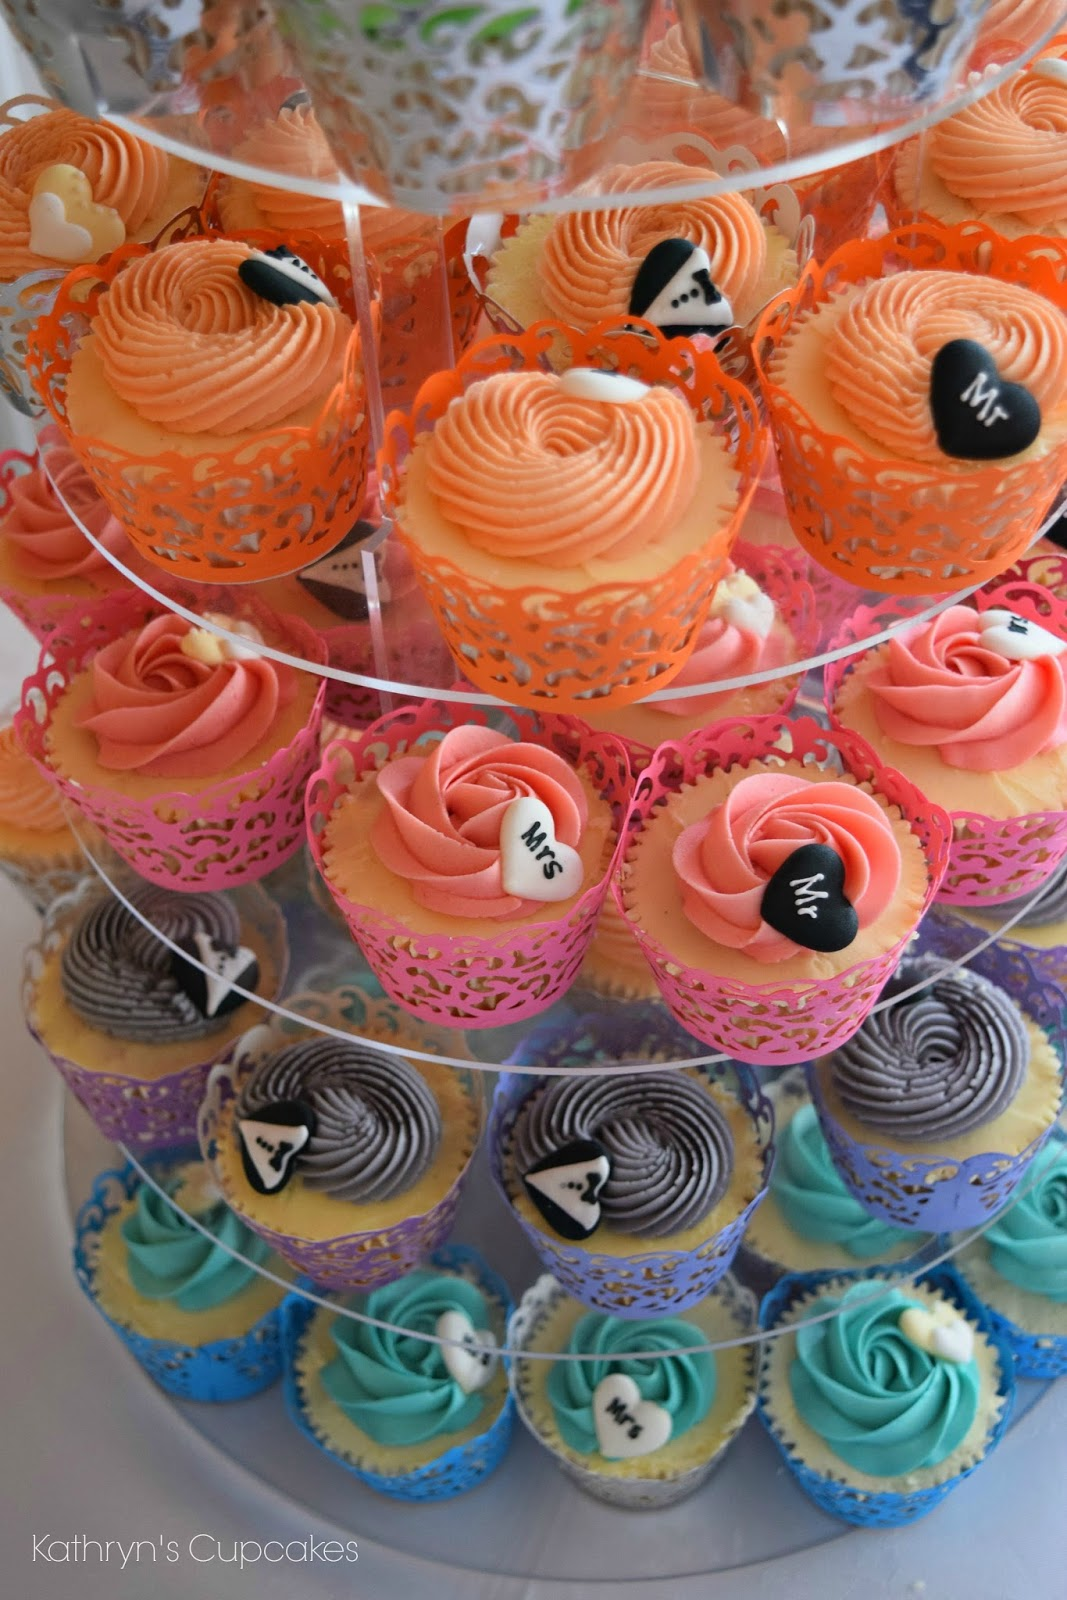 Rainbow, Cupcakes, Cake, Wedding, Themes, Beach, Summer